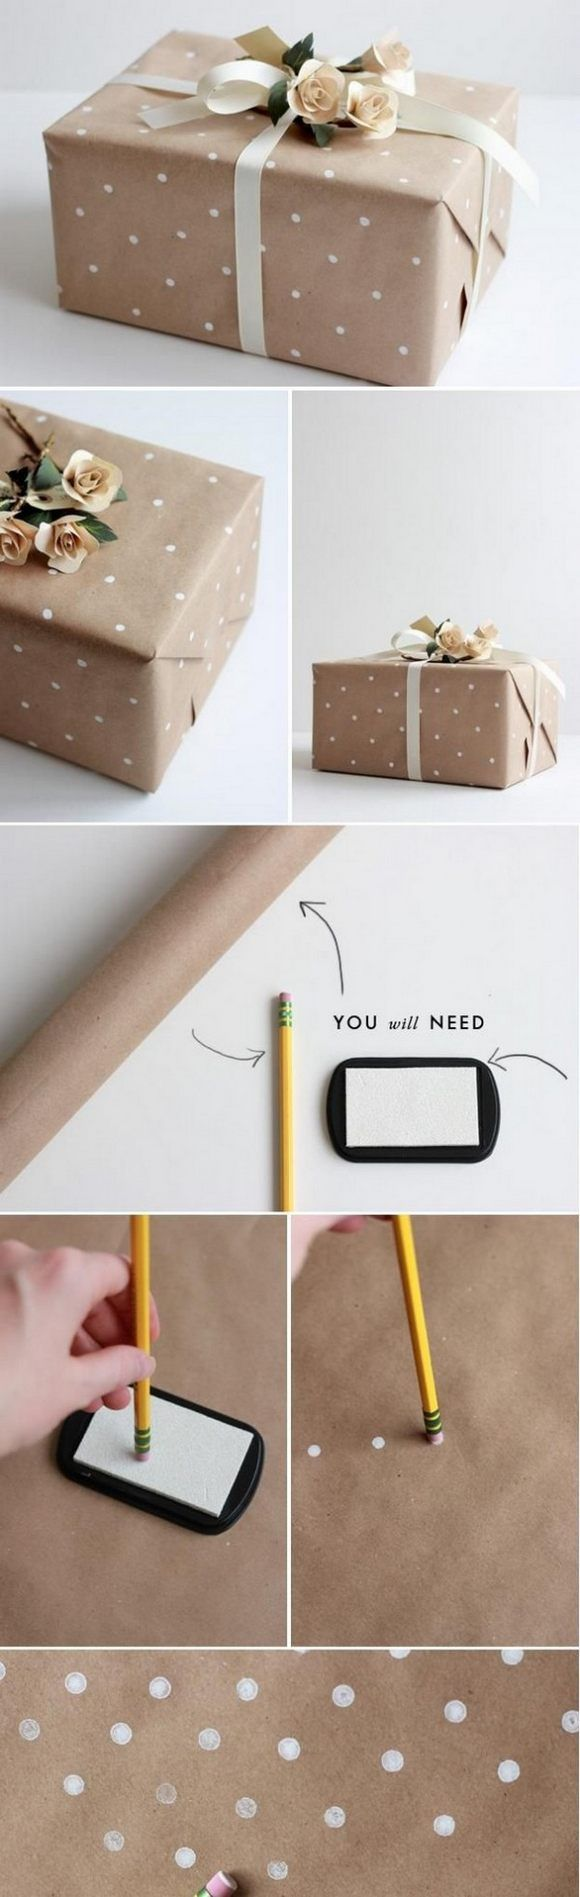 diy gift 2 Fun and Creative Do It Yourself Gift Decorations